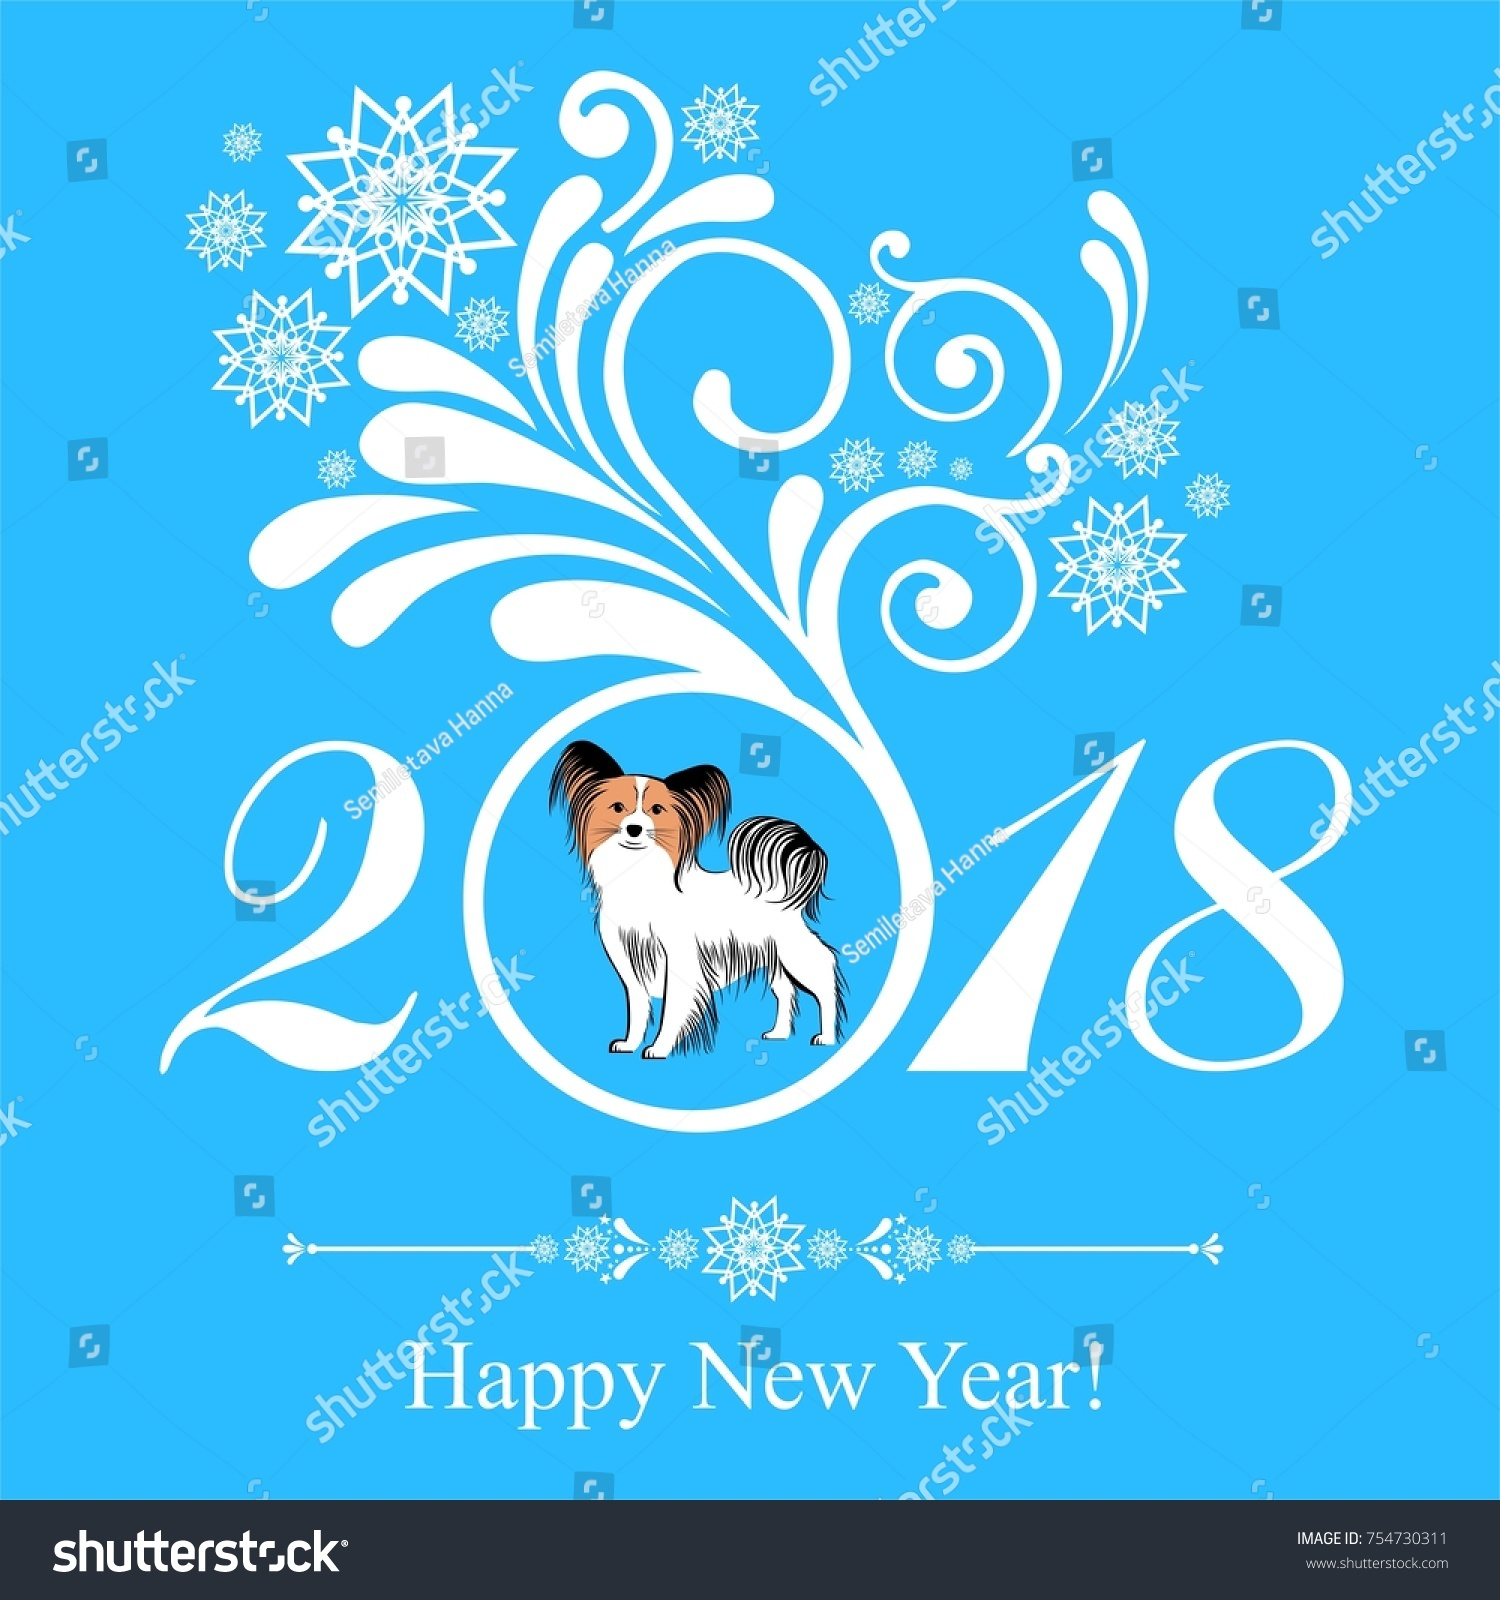 2018 Happy New Year Greeting Card Stock Illustration 754730311